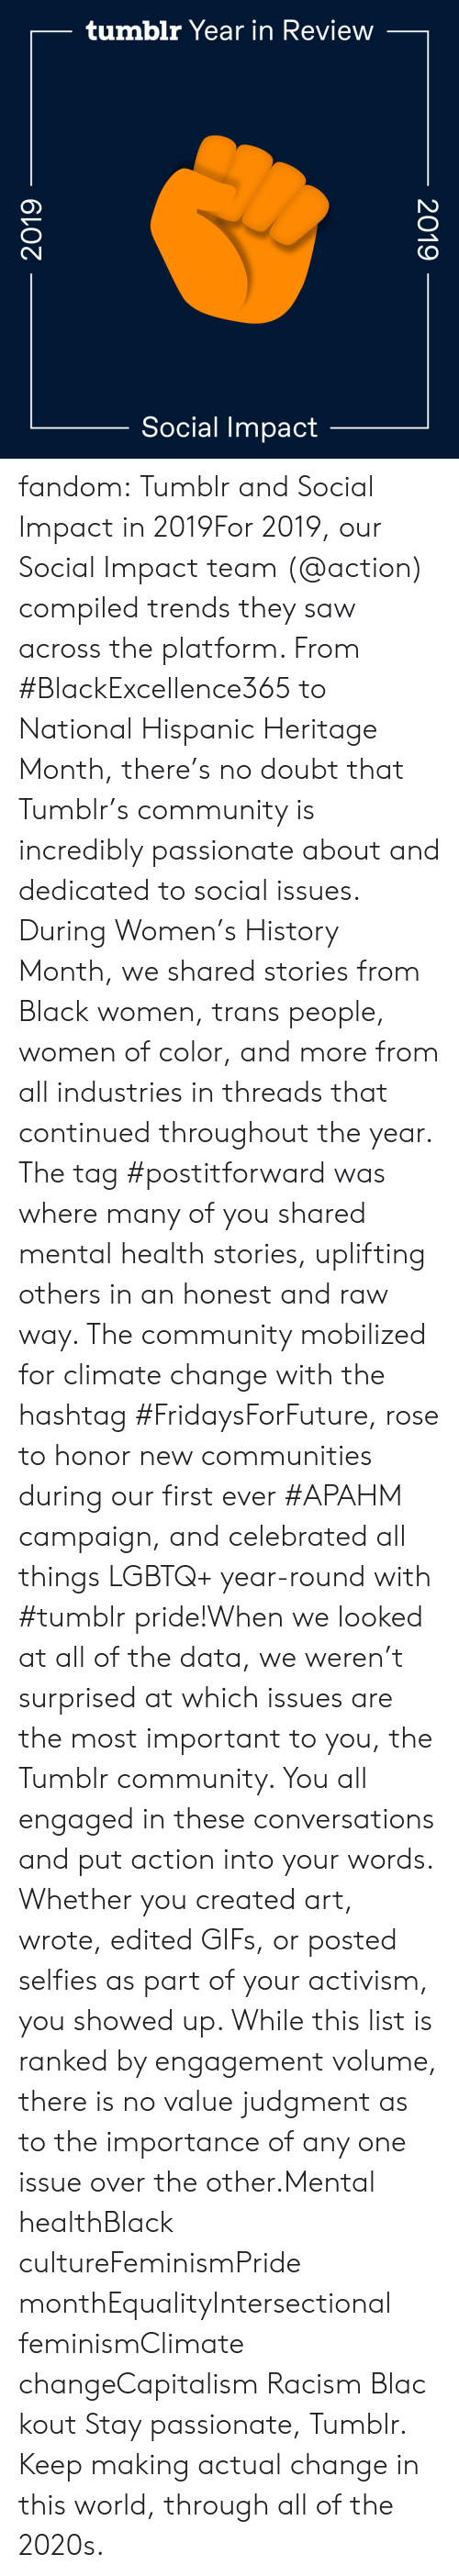 hispanic: tumblr Year in Review  Social Impact  2019  2019 fandom:  Tumblr and Social Impact in 2019For 2019, our Social Impact team (@action​) compiled trends they saw across the platform. From #BlackExcellence365 to National Hispanic Heritage Month, there's no doubt that Tumblr's community is incredibly passionate about and dedicated to social issues. During Women's History Month, we shared stories from Black women, trans people, women of color, and more from all industries in threads that continued throughout the year. The tag #postitforward was where many of you shared mental health stories, uplifting others in an honest and raw way. The community mobilized for climate change with the hashtag #FridaysForFuture, rose to honor new communities during our first ever #APAHM campaign, and celebrated all things LGBTQ+ year-round with #tumblr pride!When we looked at all of the data, we weren't surprised at which issues are the most important to you, the Tumblr community. You all engaged in these conversations and put action into your words. Whether you created art, wrote, edited GIFs, or posted selfies as part of your activism, you showed up. While this list is ranked by engagement volume, there is no value judgment as to the importance of any one issue over the other.Mental healthBlack cultureFeminismPride monthEqualityIntersectional feminismClimate changeCapitalism Racism Blackout Stay passionate, Tumblr. Keep making actual change in this world, through all of the 2020s.